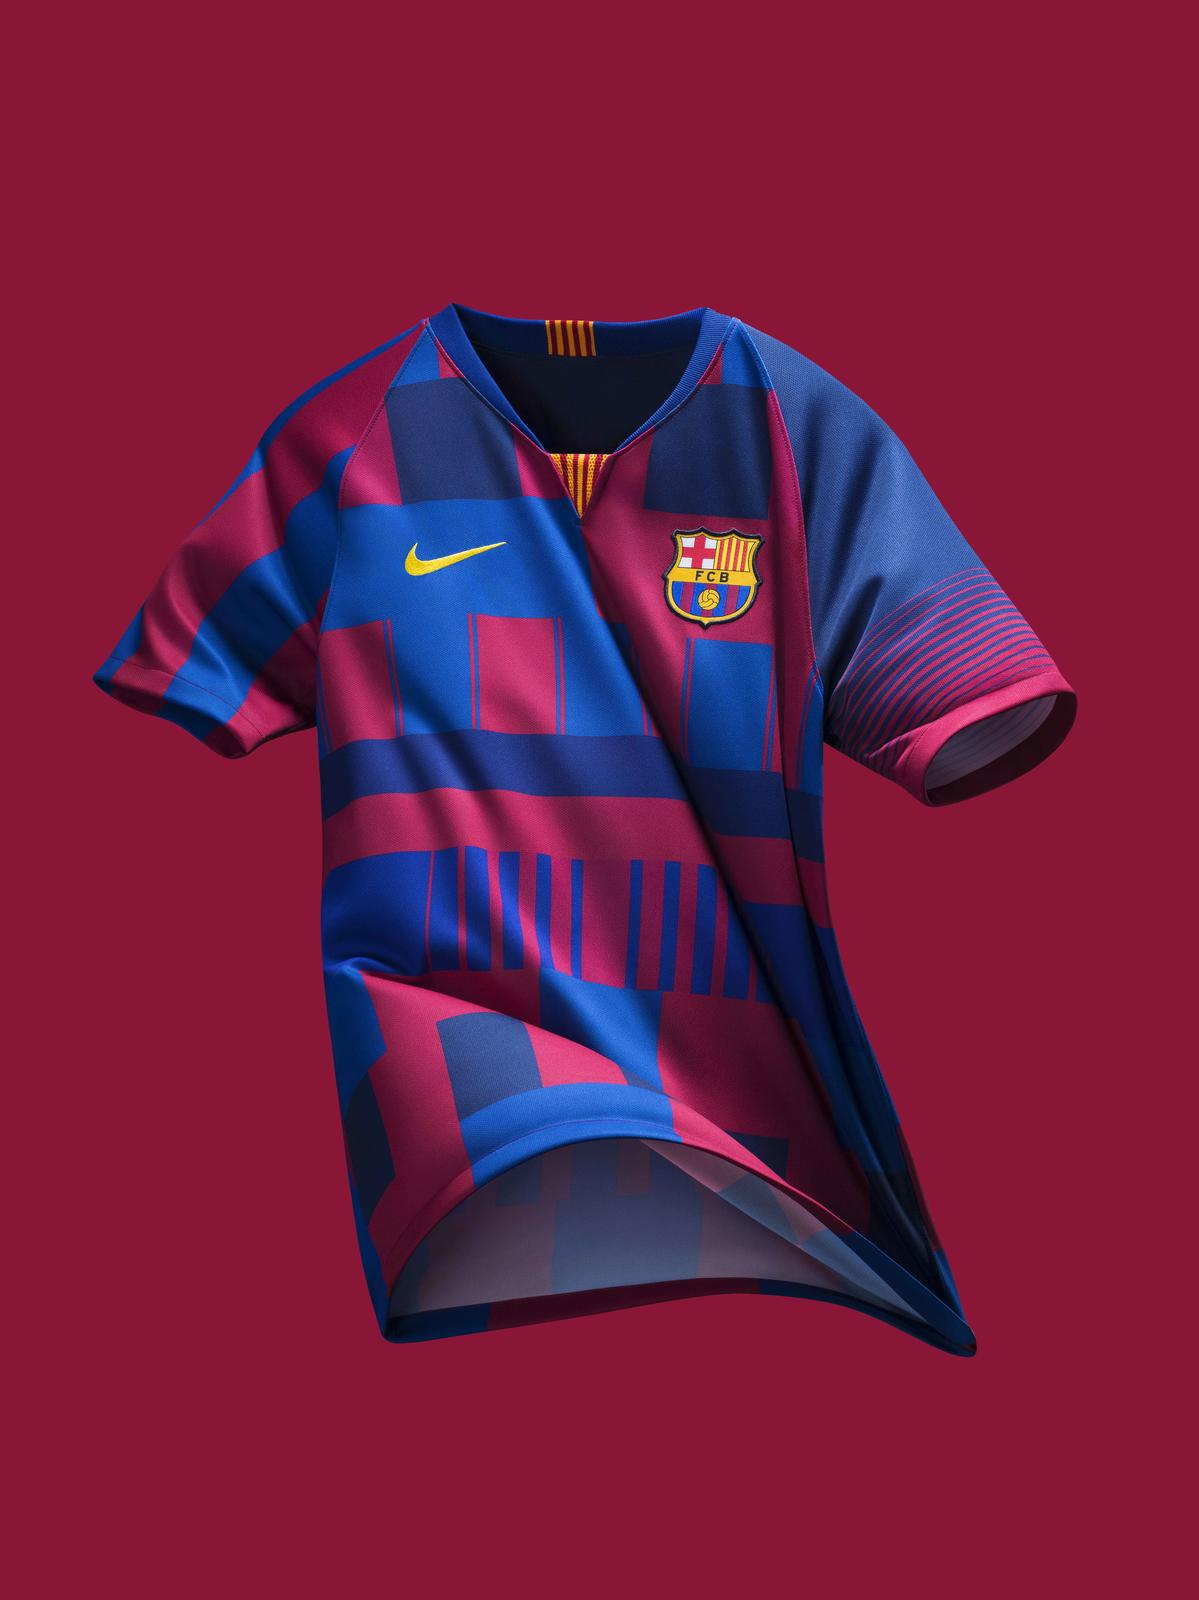 4f35acdc8 FC Barcelona What The 20th Anniversary Jersey - Nike News